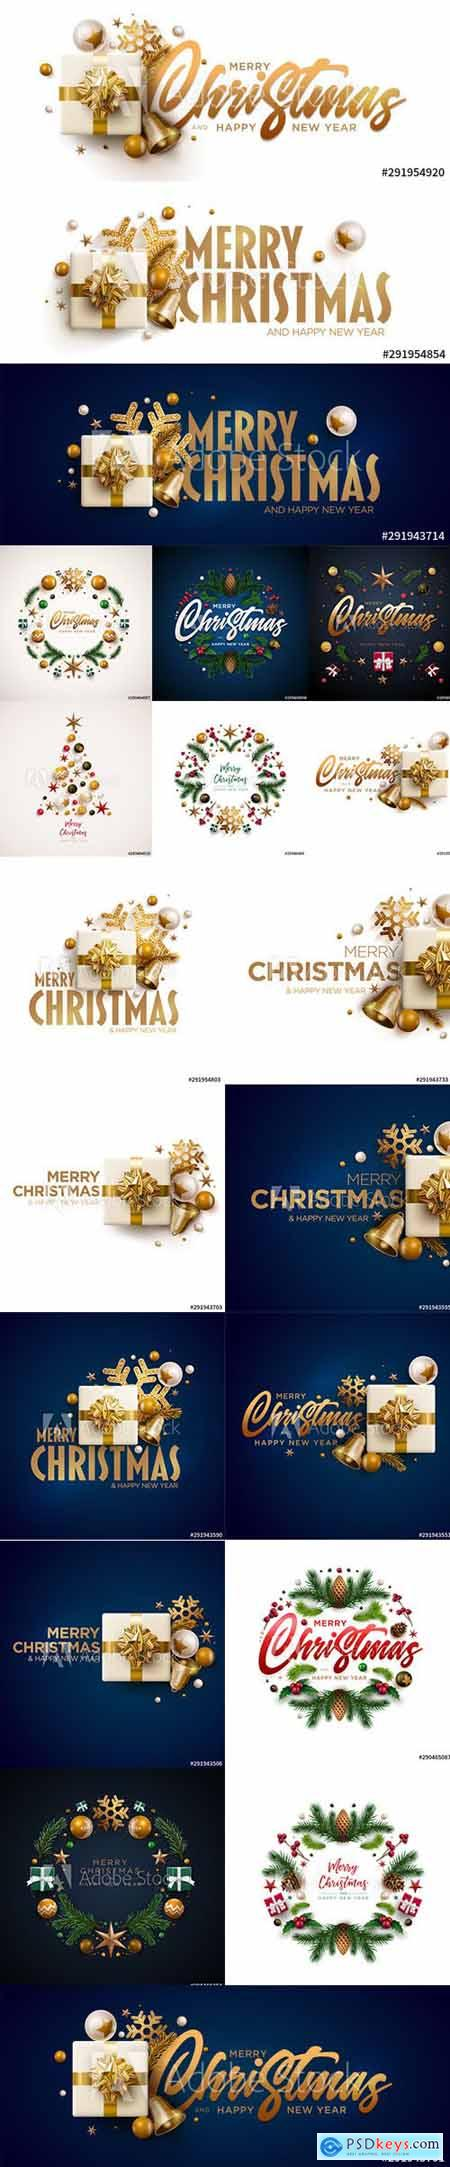 Merry Christmas and Happy New Year 2020 Illustrations Set 8